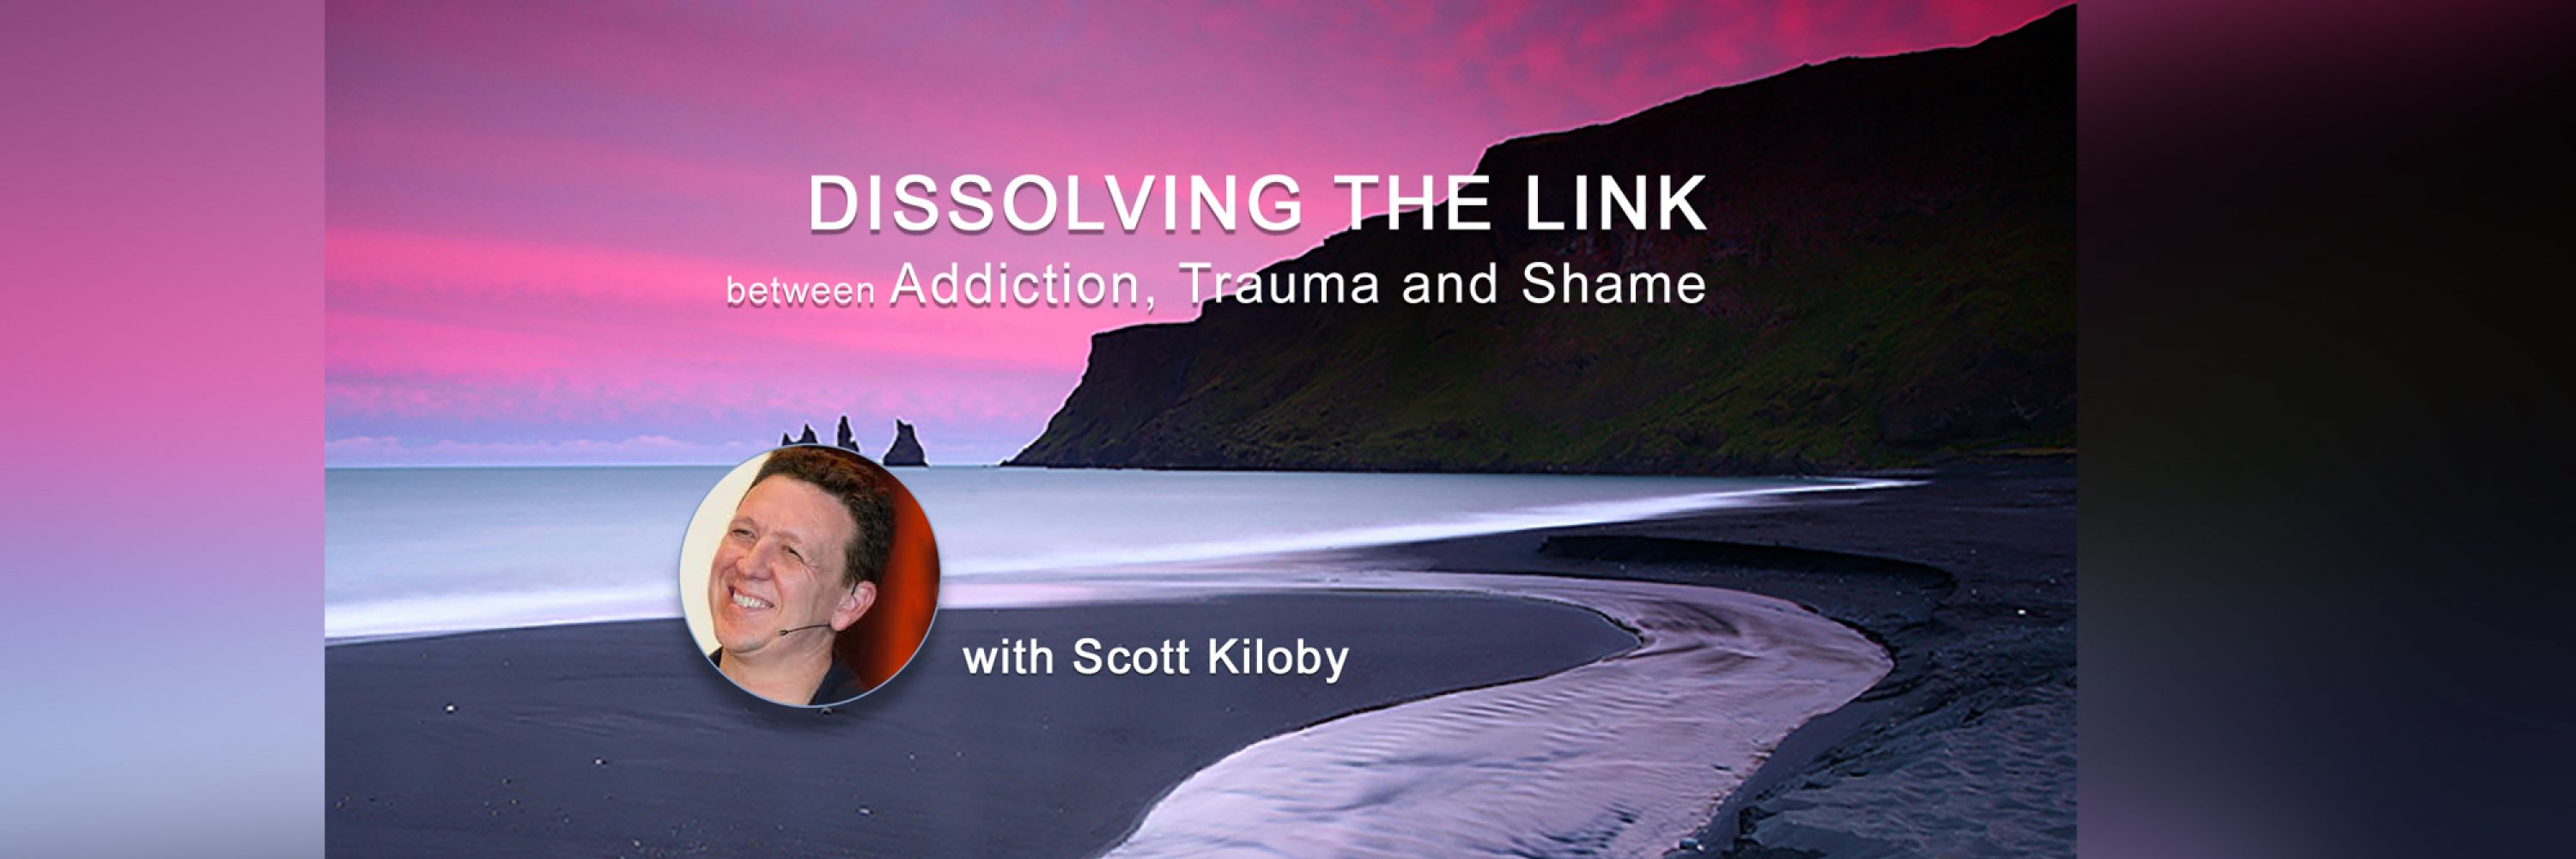 Dissolving the Link Between Addiction, Trauma and Shame